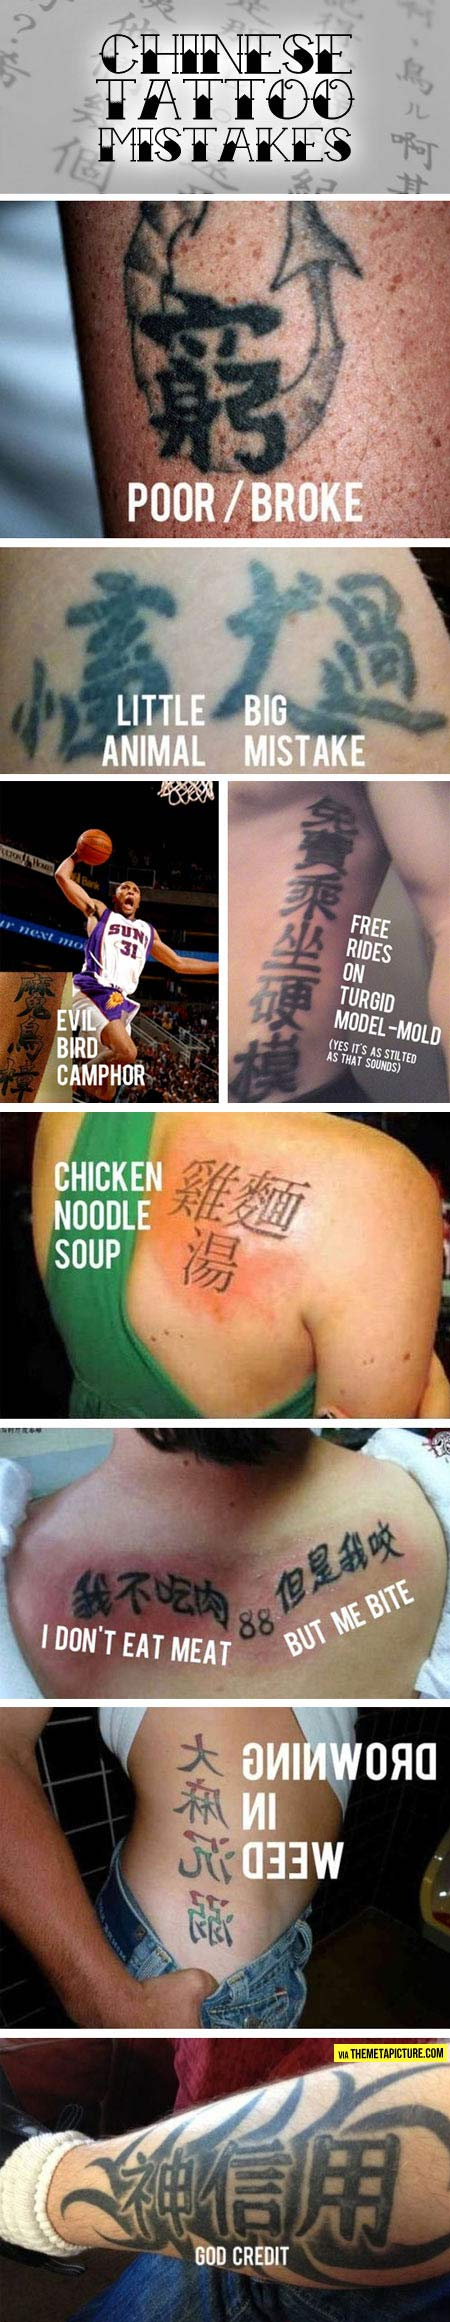 Chinese tattoo mistakes...